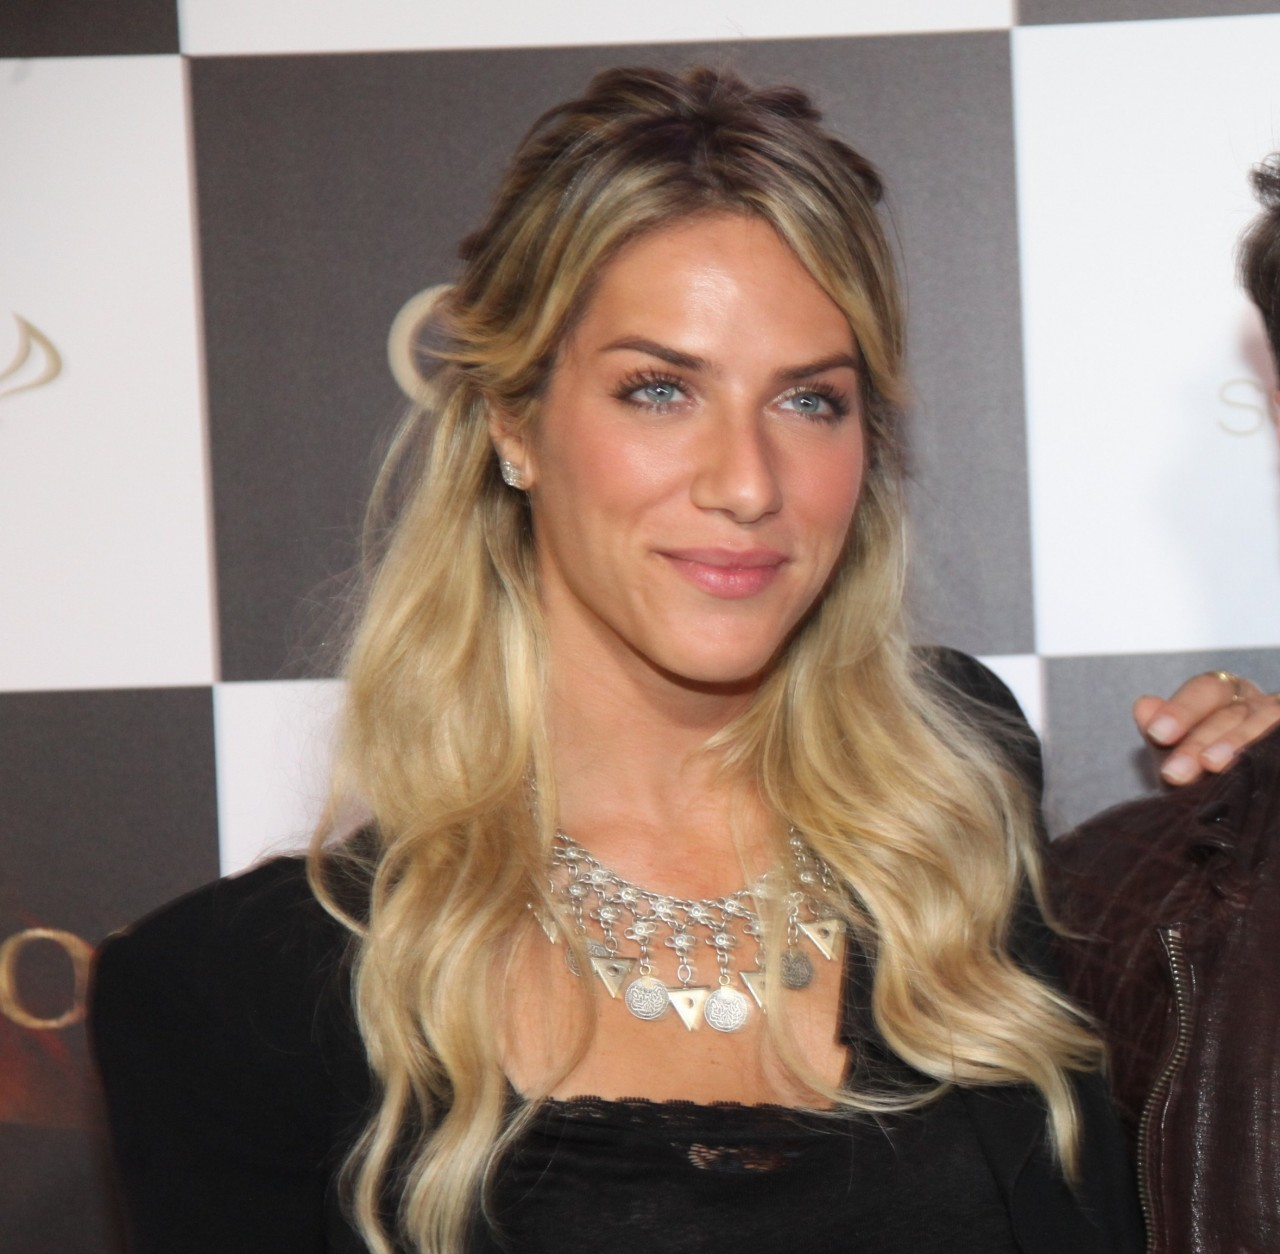 Giovanna Ewbank nude (99 photos), pictures Paparazzi, iCloud, cleavage 2017